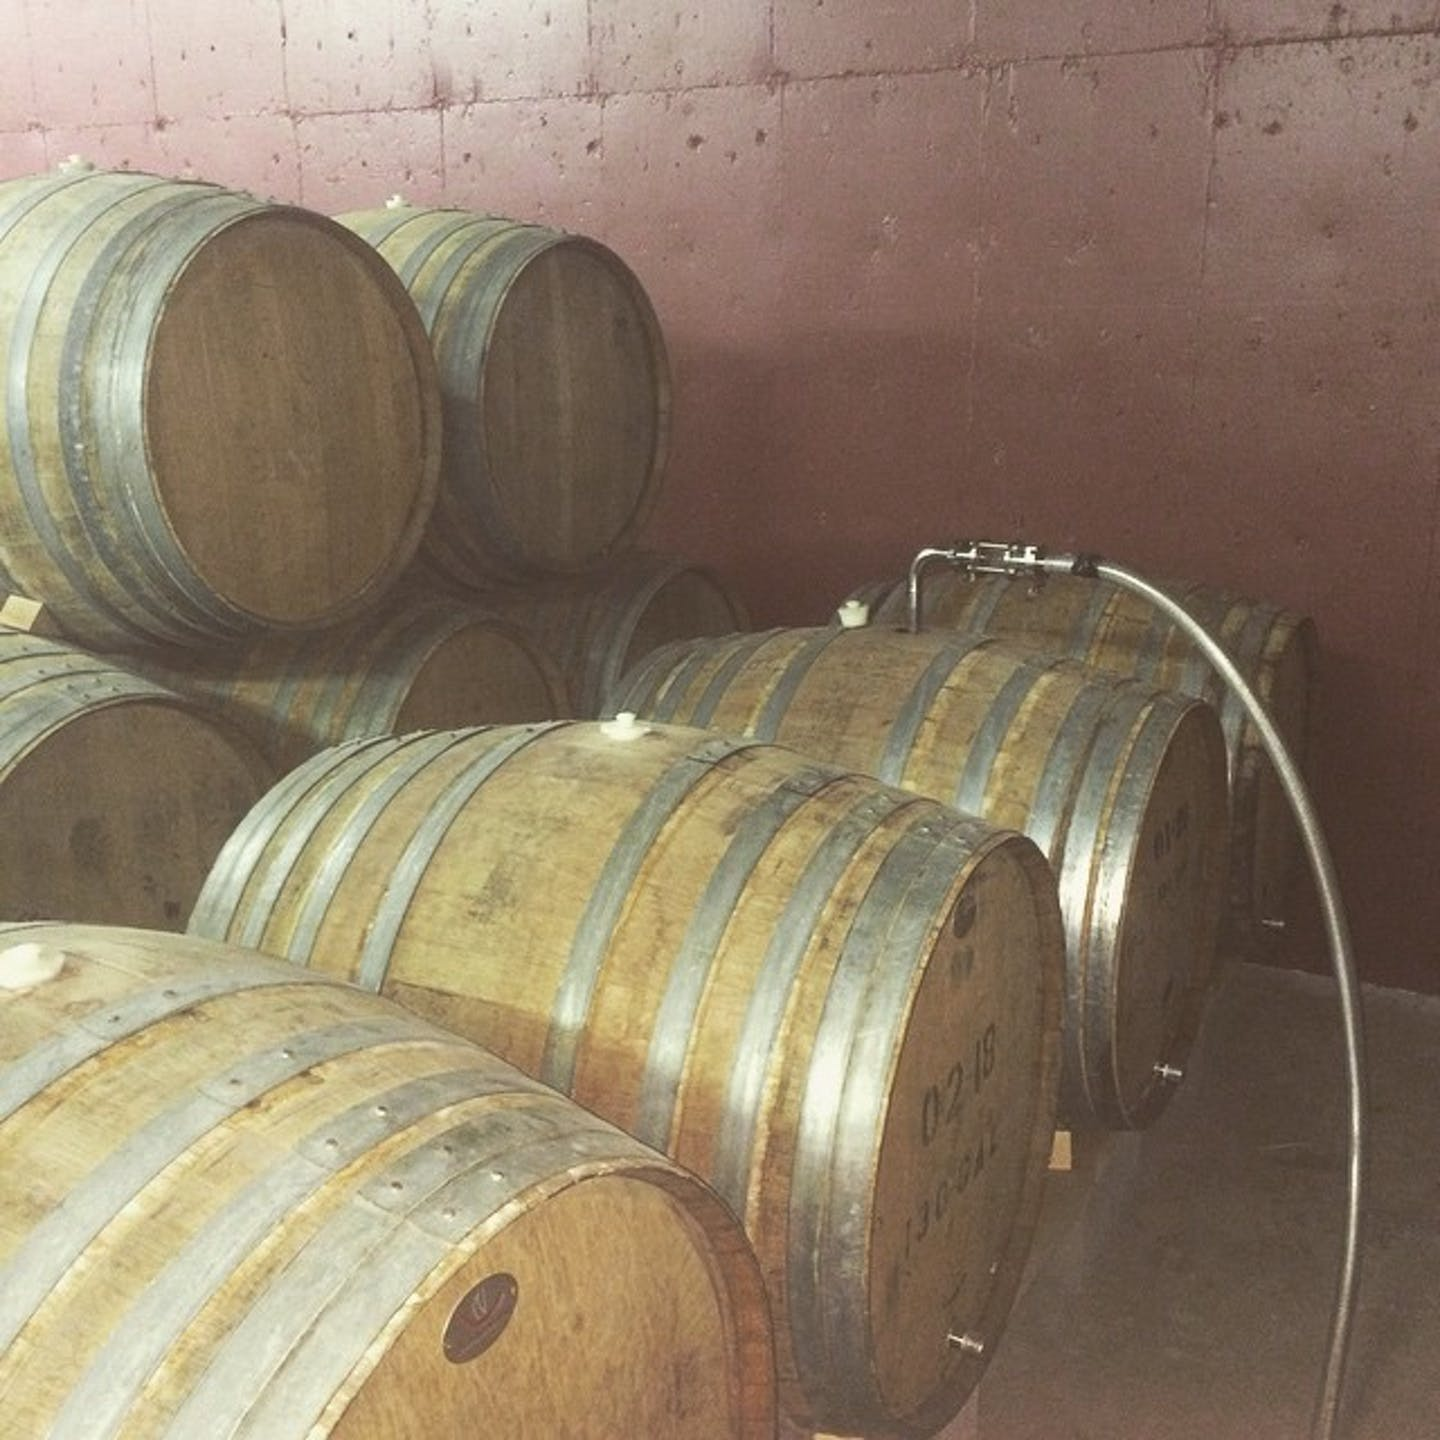 Process - Filling Barrels